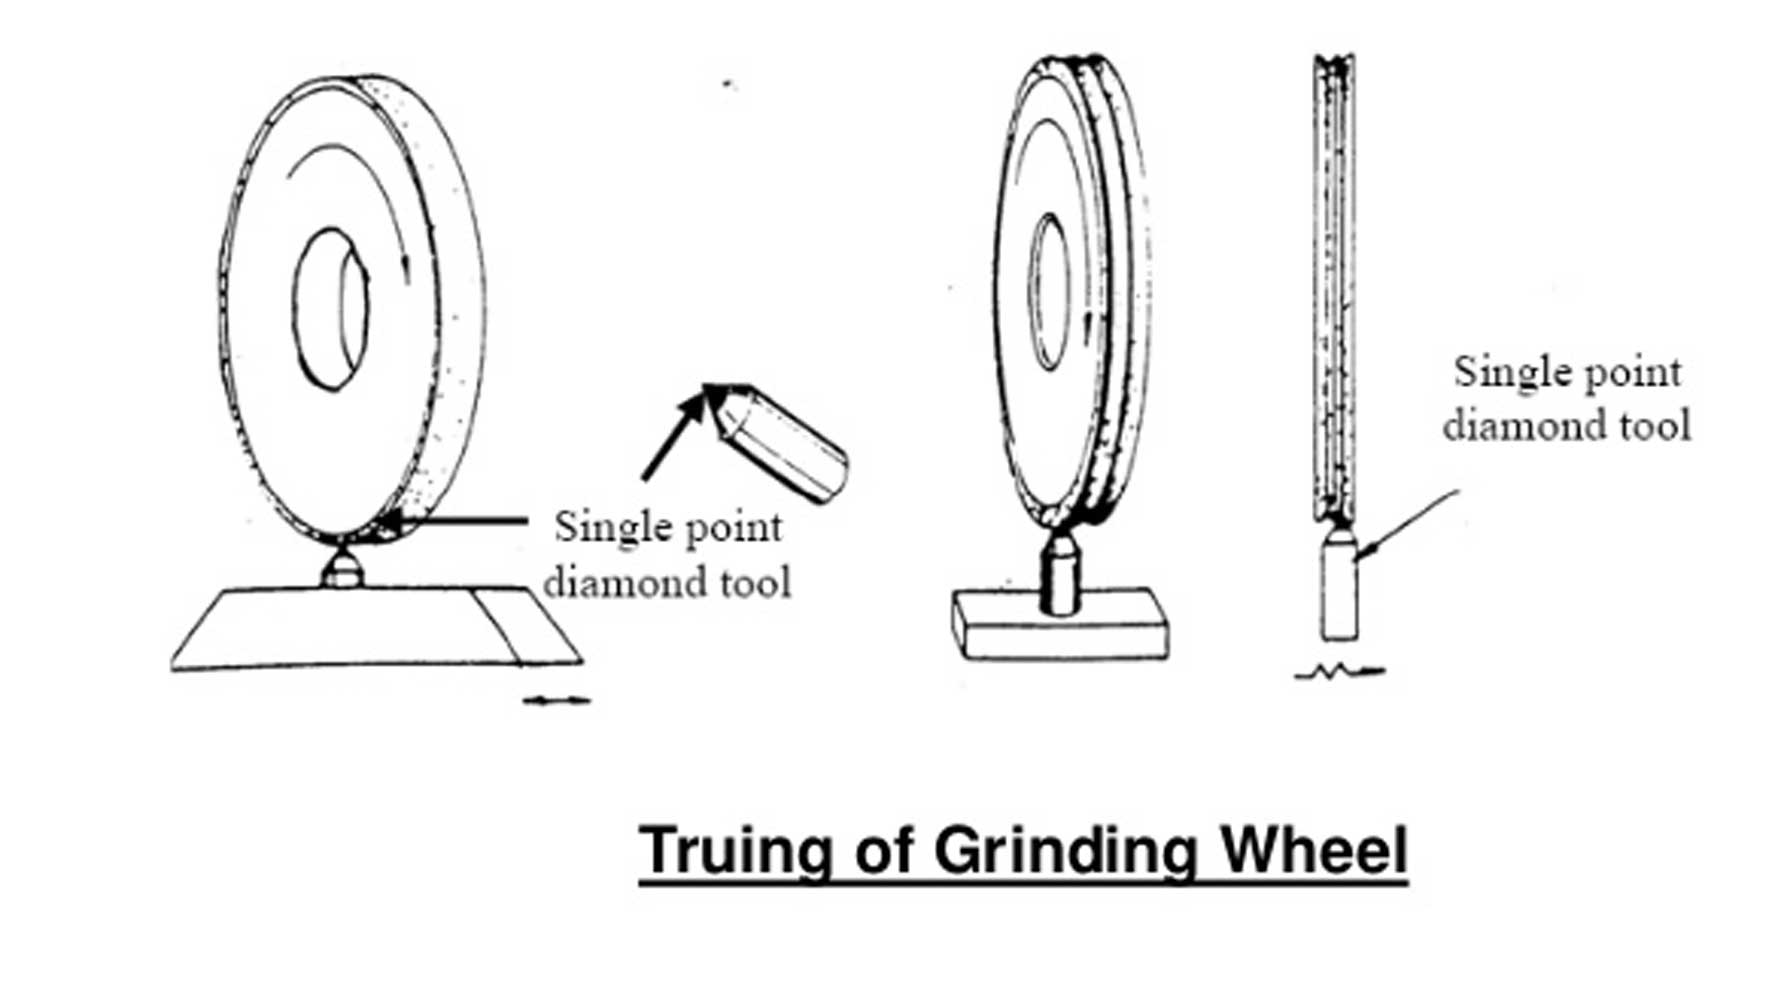 grinding wheel truing and dressing